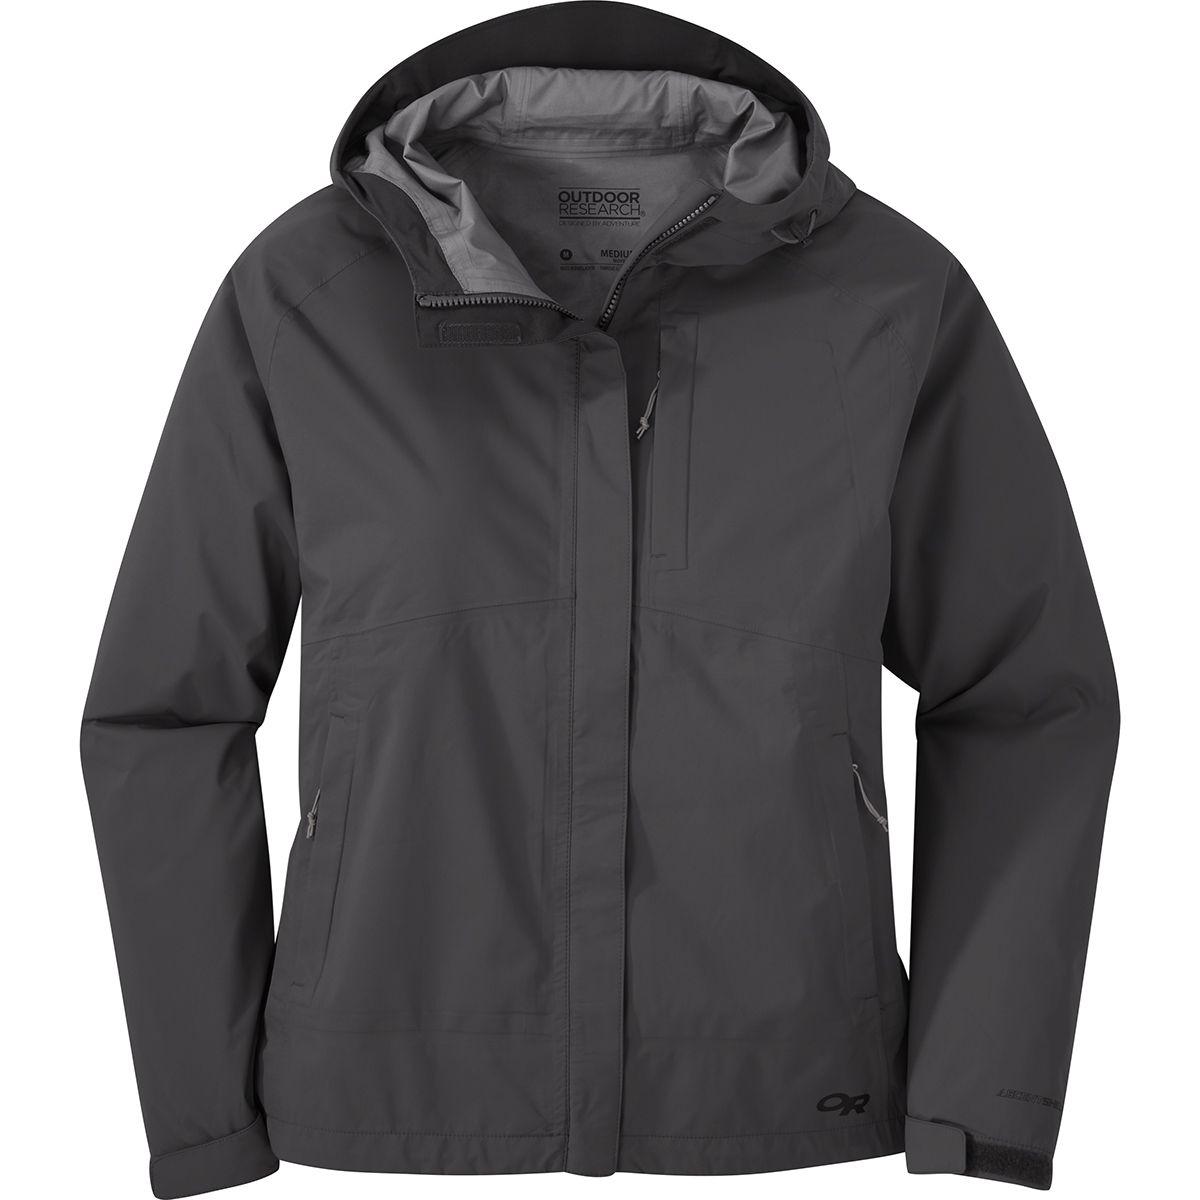 Outdoor Research Damen Guardian Jacke (Größe XS, Braun) | Hardshelljacken & Regenjacken > Damen